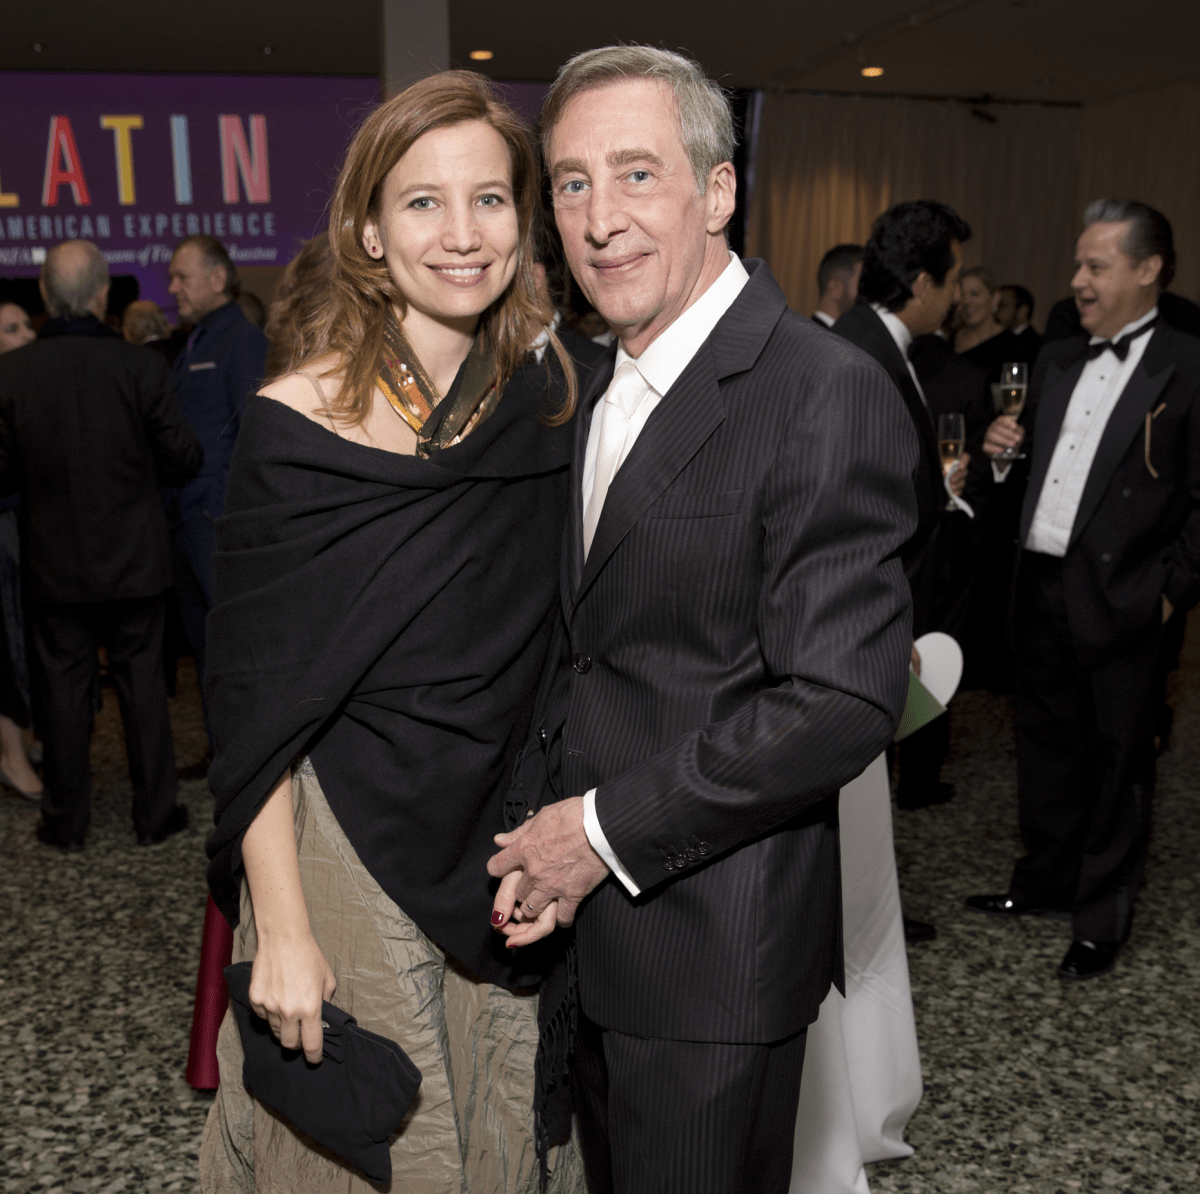 Victoria Goldstein, Randall Jamail at Latin American Experience